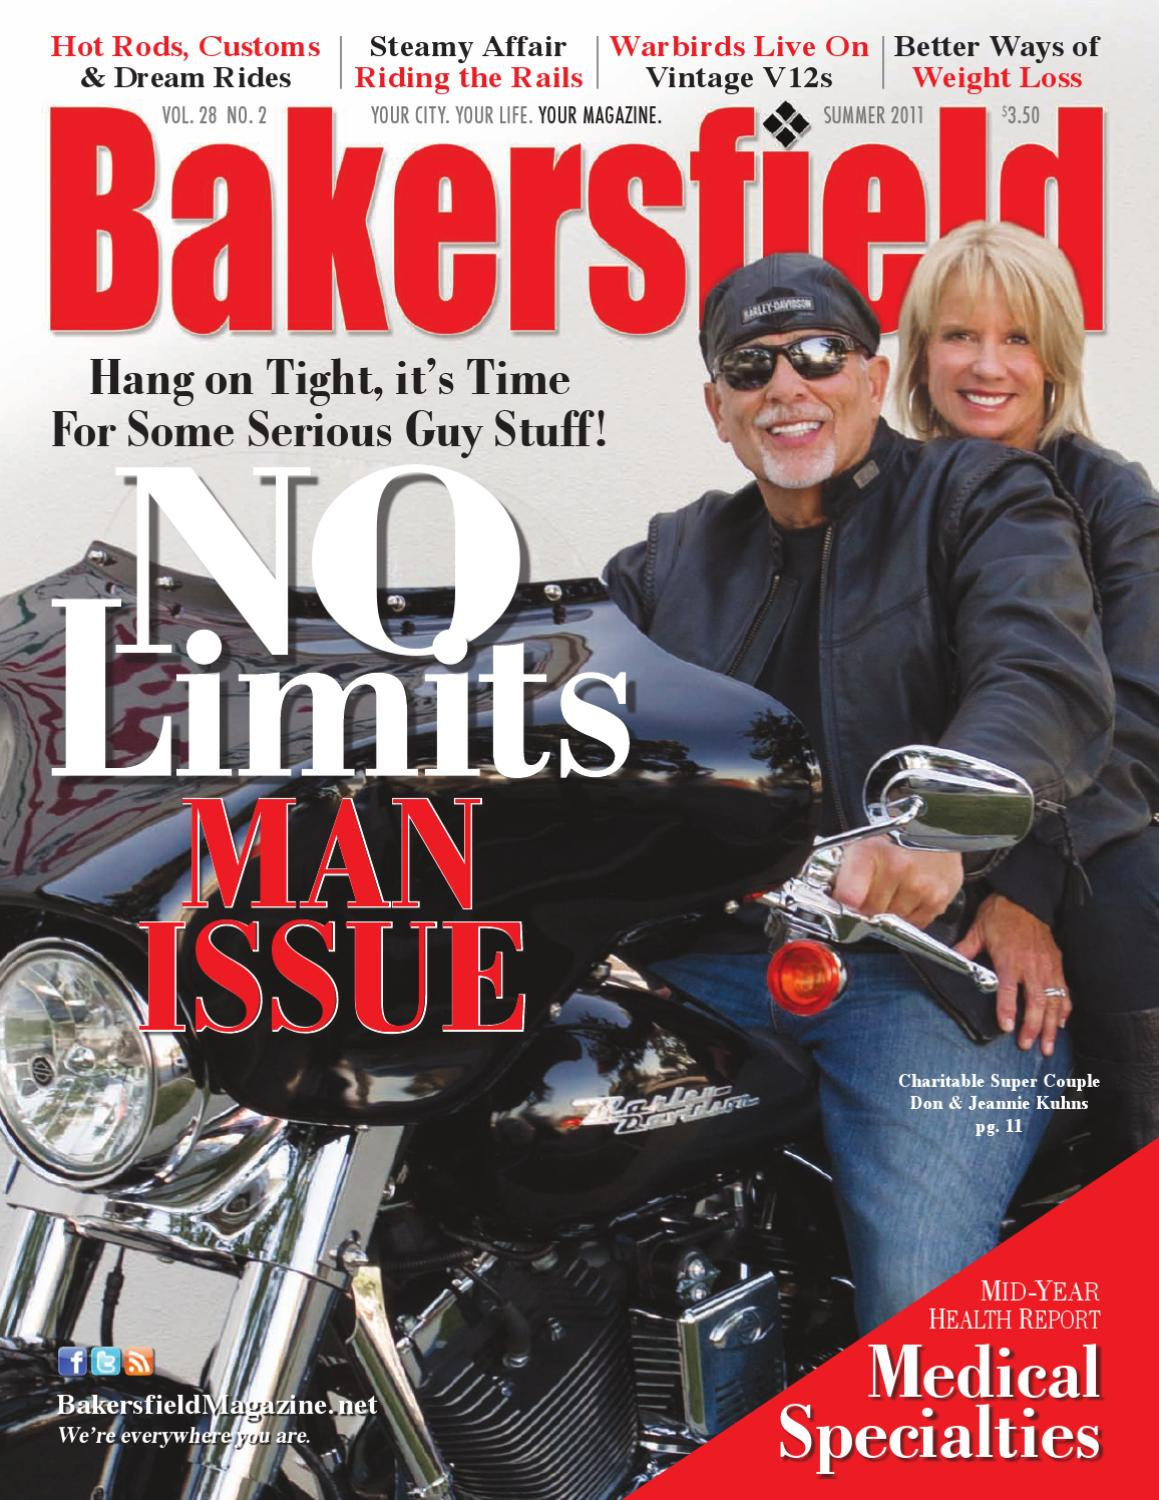 Bakersfield Magazine 28 2 The Man Issue By Bakersfield